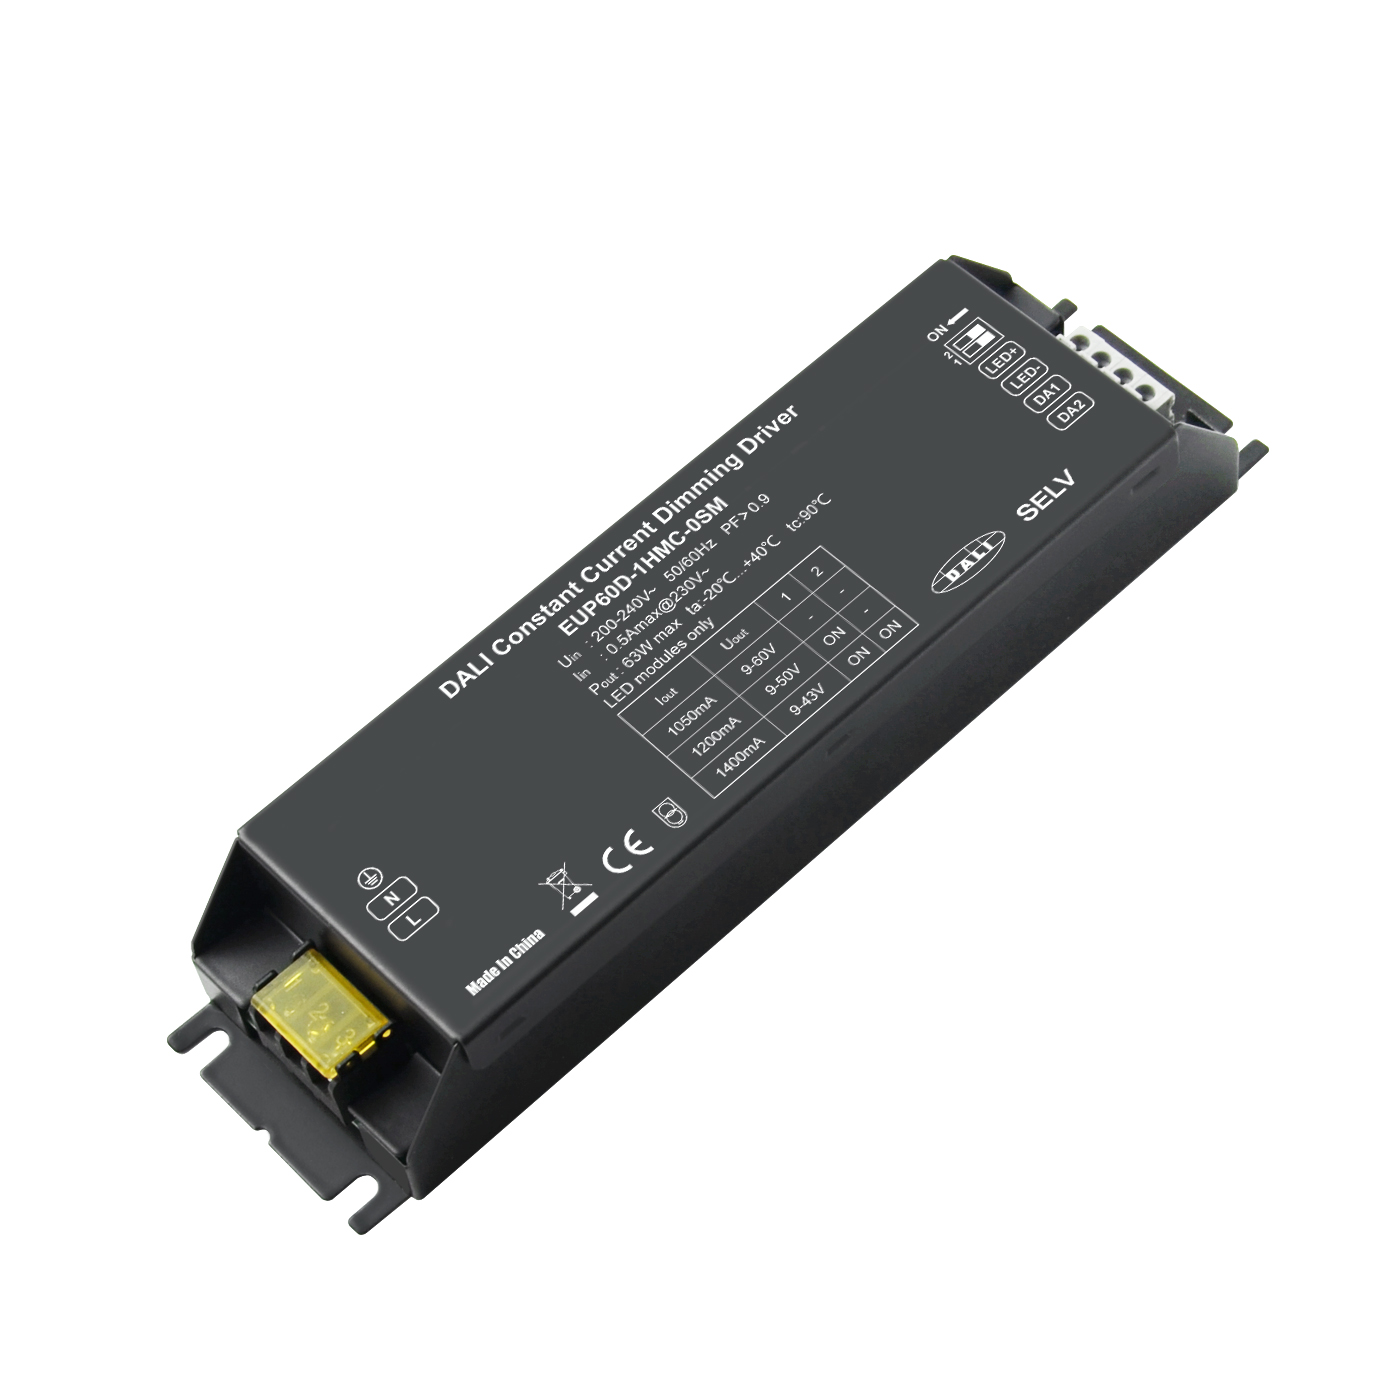 60W 1050/1200/1400mA Constant Current DALI Driver EUP60D-1HMC-0 Featured Image